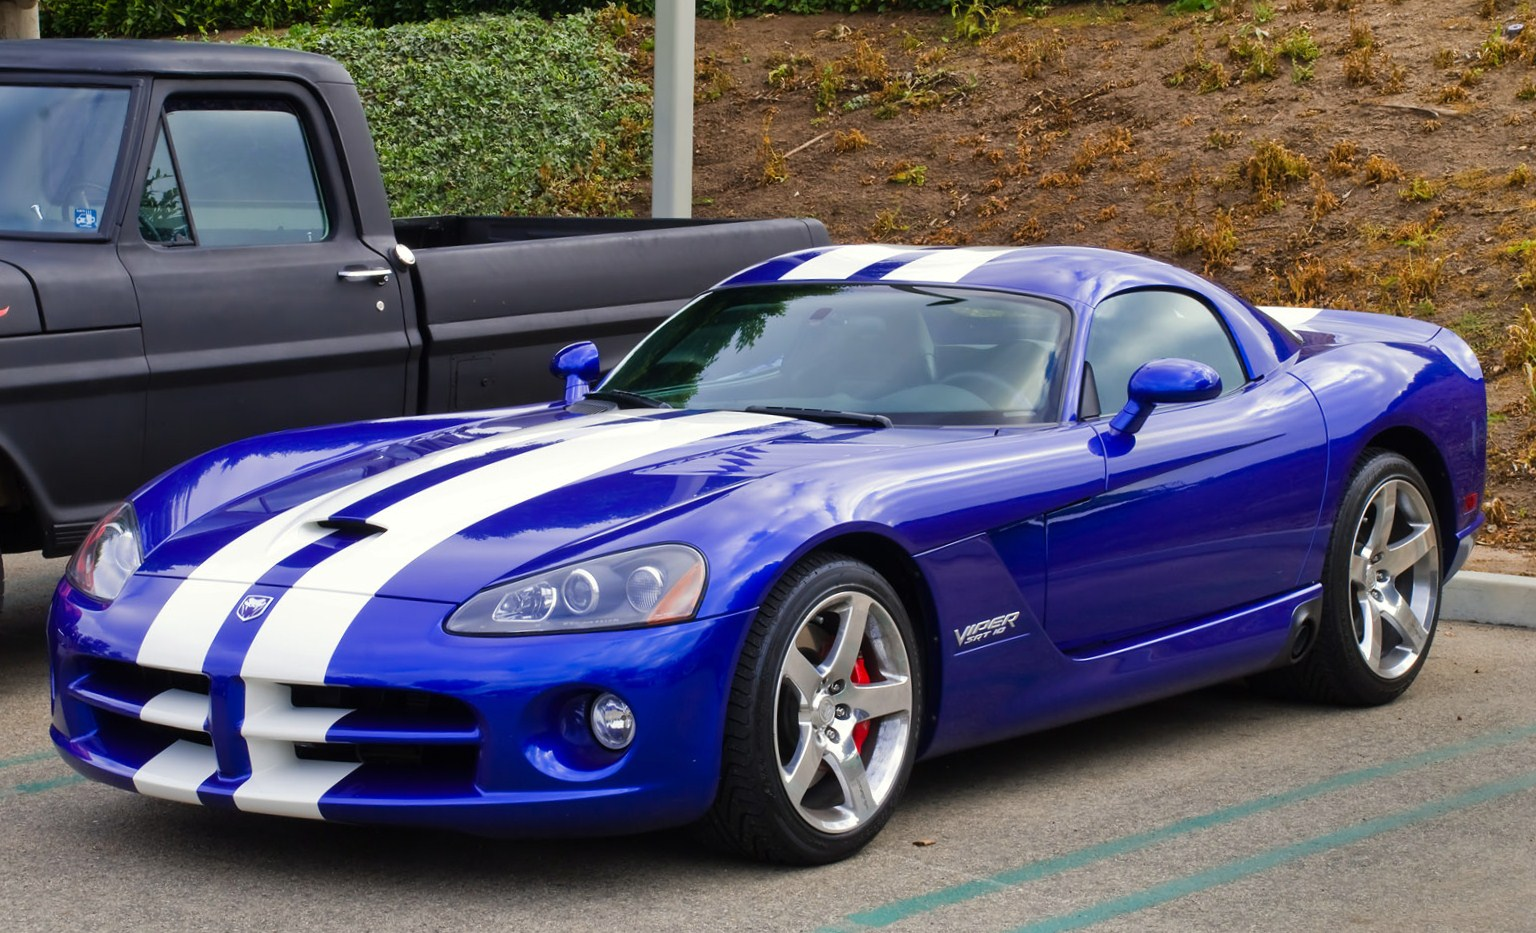 File:Dodge Viper SRT 10